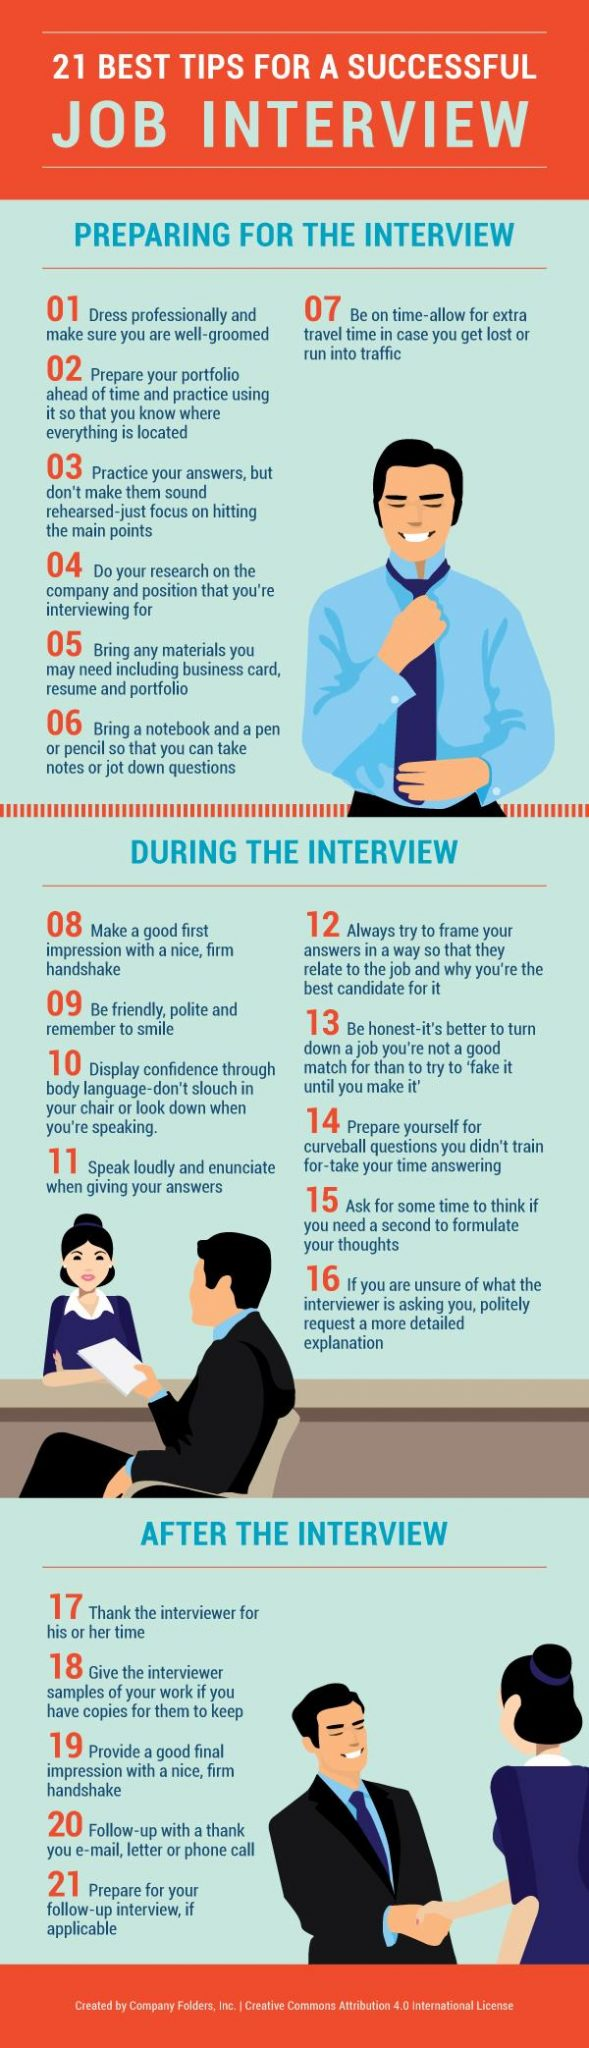 How to Prepare For a Job Interview? 4